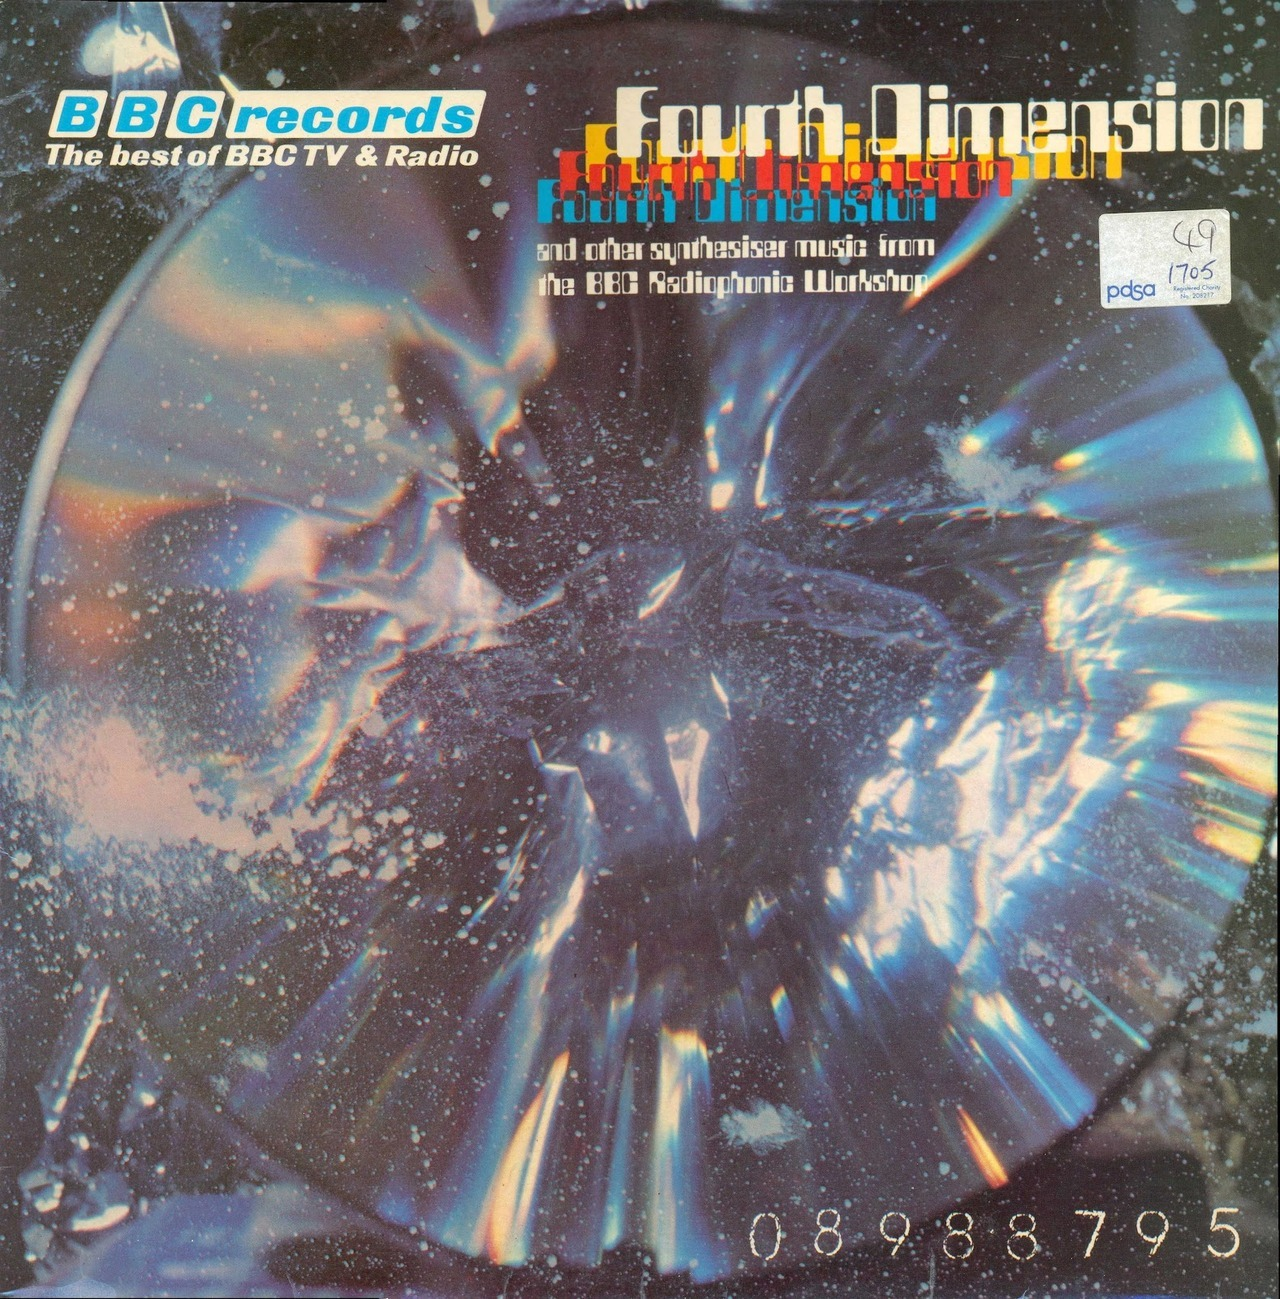 Paddy Kingsland - Fourth Dimension | BBC Radiophonic Workshop | 1973 via In-Flight Entertainment